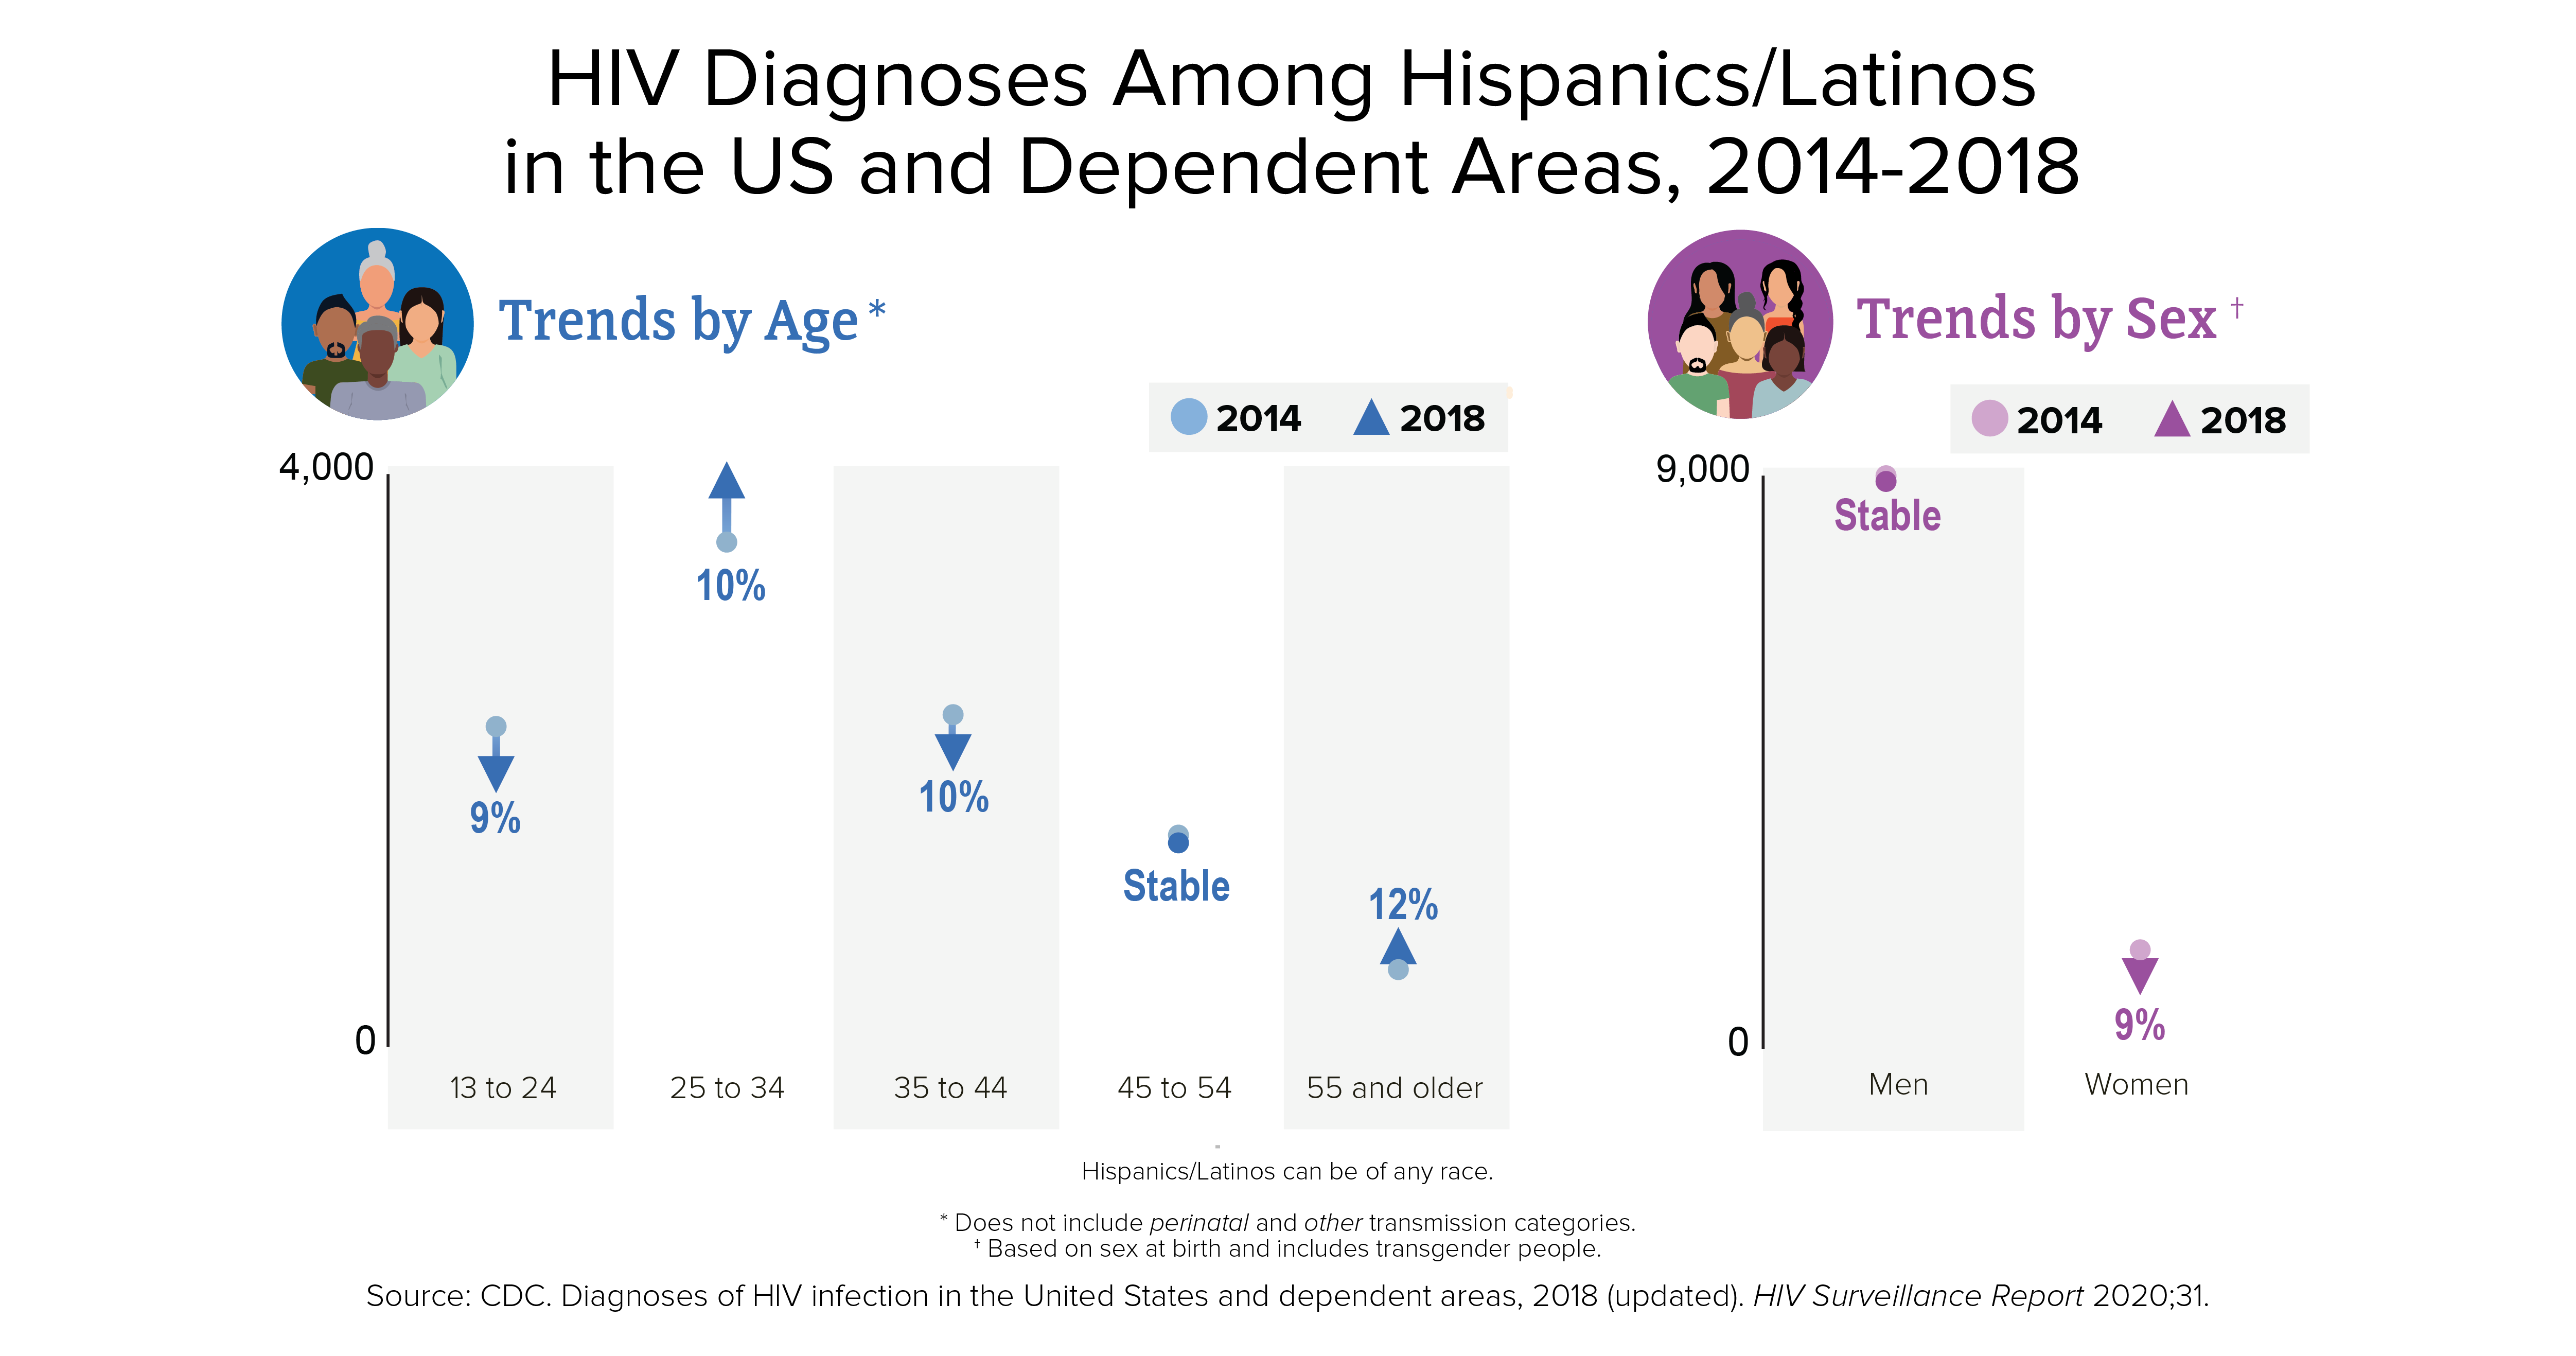 This trend chart shows HIV diagnoses among Hispanics/Latinos in 50 states and the District of Columbia from 2010 to 2016. HIV diagnoses increased 6% among Hispanics/Latinos overall. Hispanic/Latino men by transmission category, male-to-male sexual contact increased 21%; injection drug use decreased 39%; male-to-male sexual contact and injection drug use decreased 21%; and heterosexual contact decreased 17%. Hispanic women/Latinas by transmission category, heterosexual contact decreased 20% and injection drug use decreased 25%.